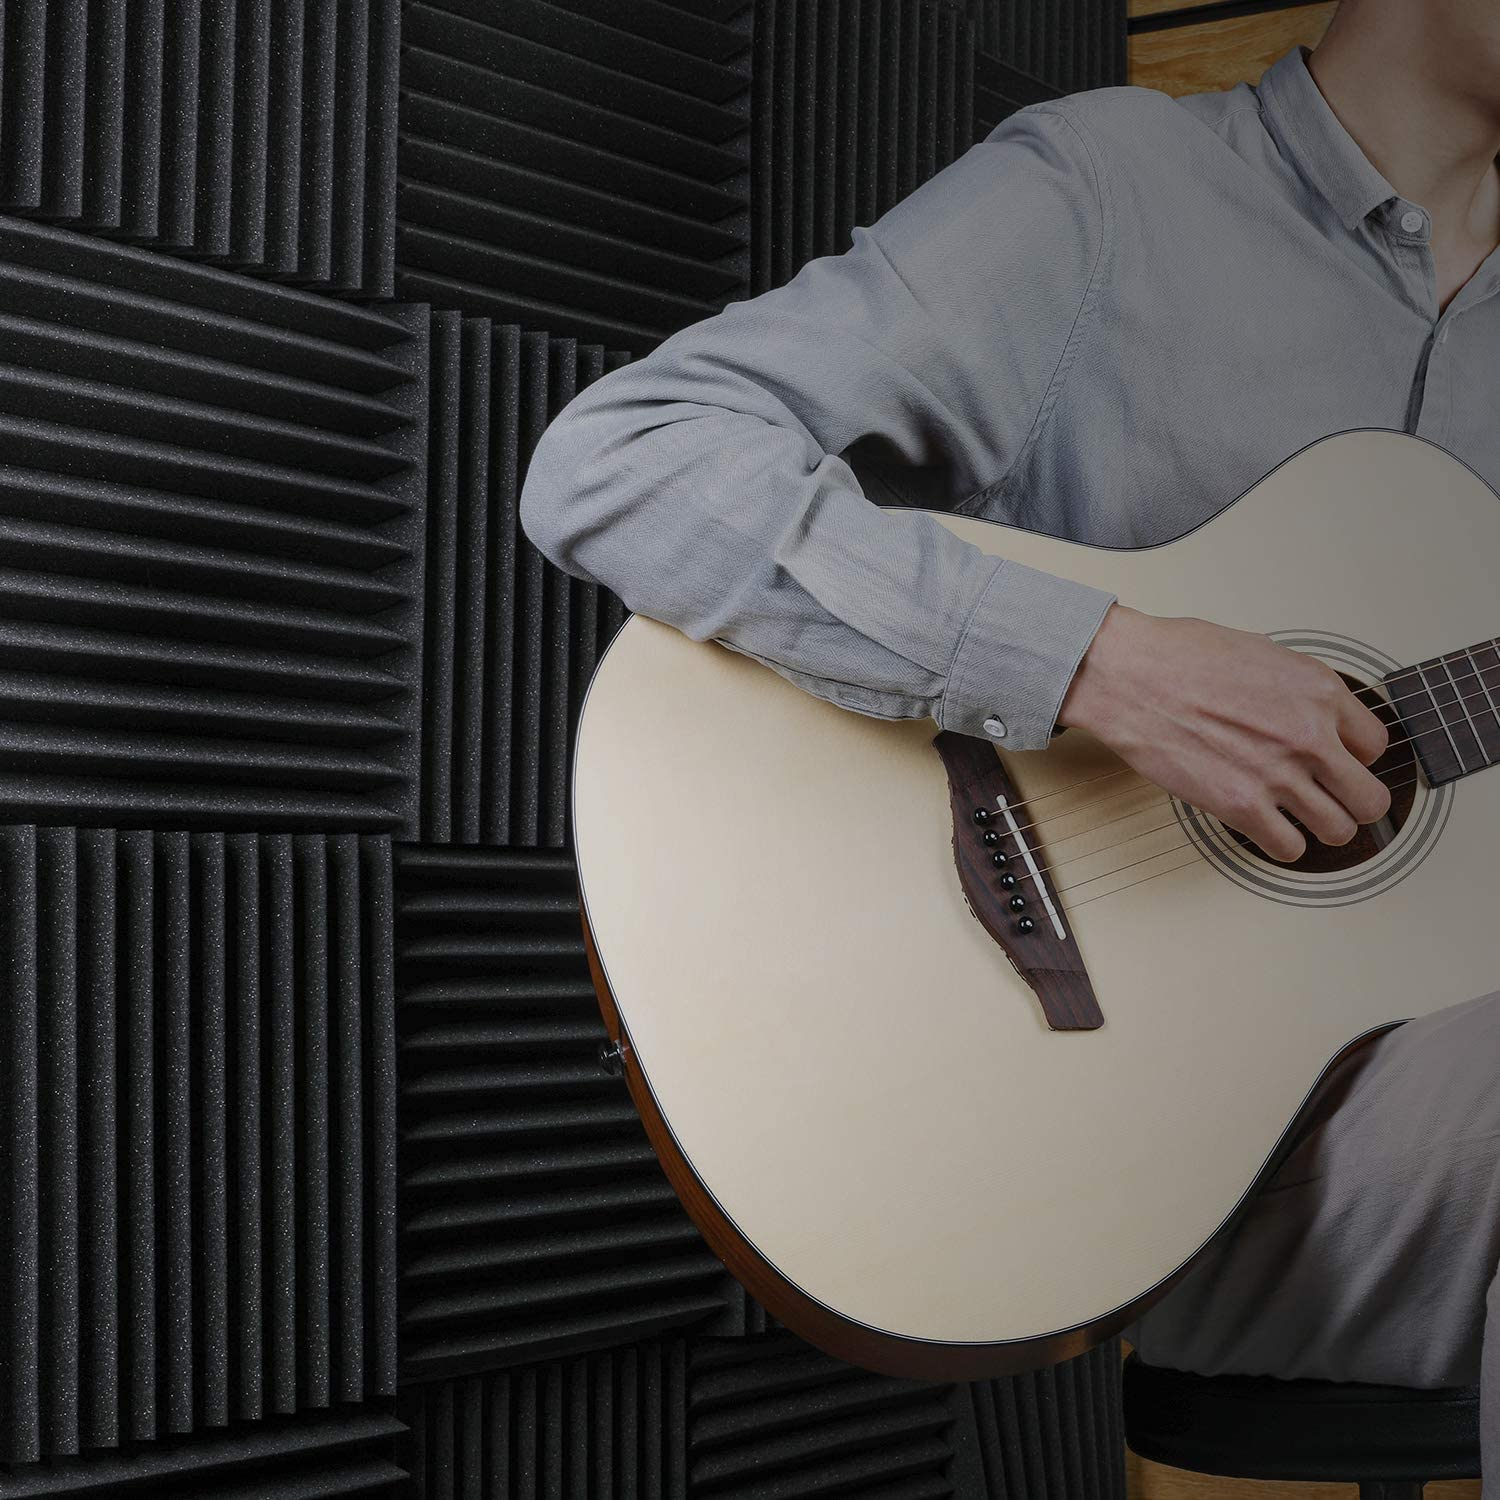 Recording Studios Offices Donner 12-Pack Acoustic Foam Panels Wedges Fireproof Soundproofing Foam Noise Cancelling Foam for Studios Home Studios 1/'/' x 12/'/' x 12/'/'